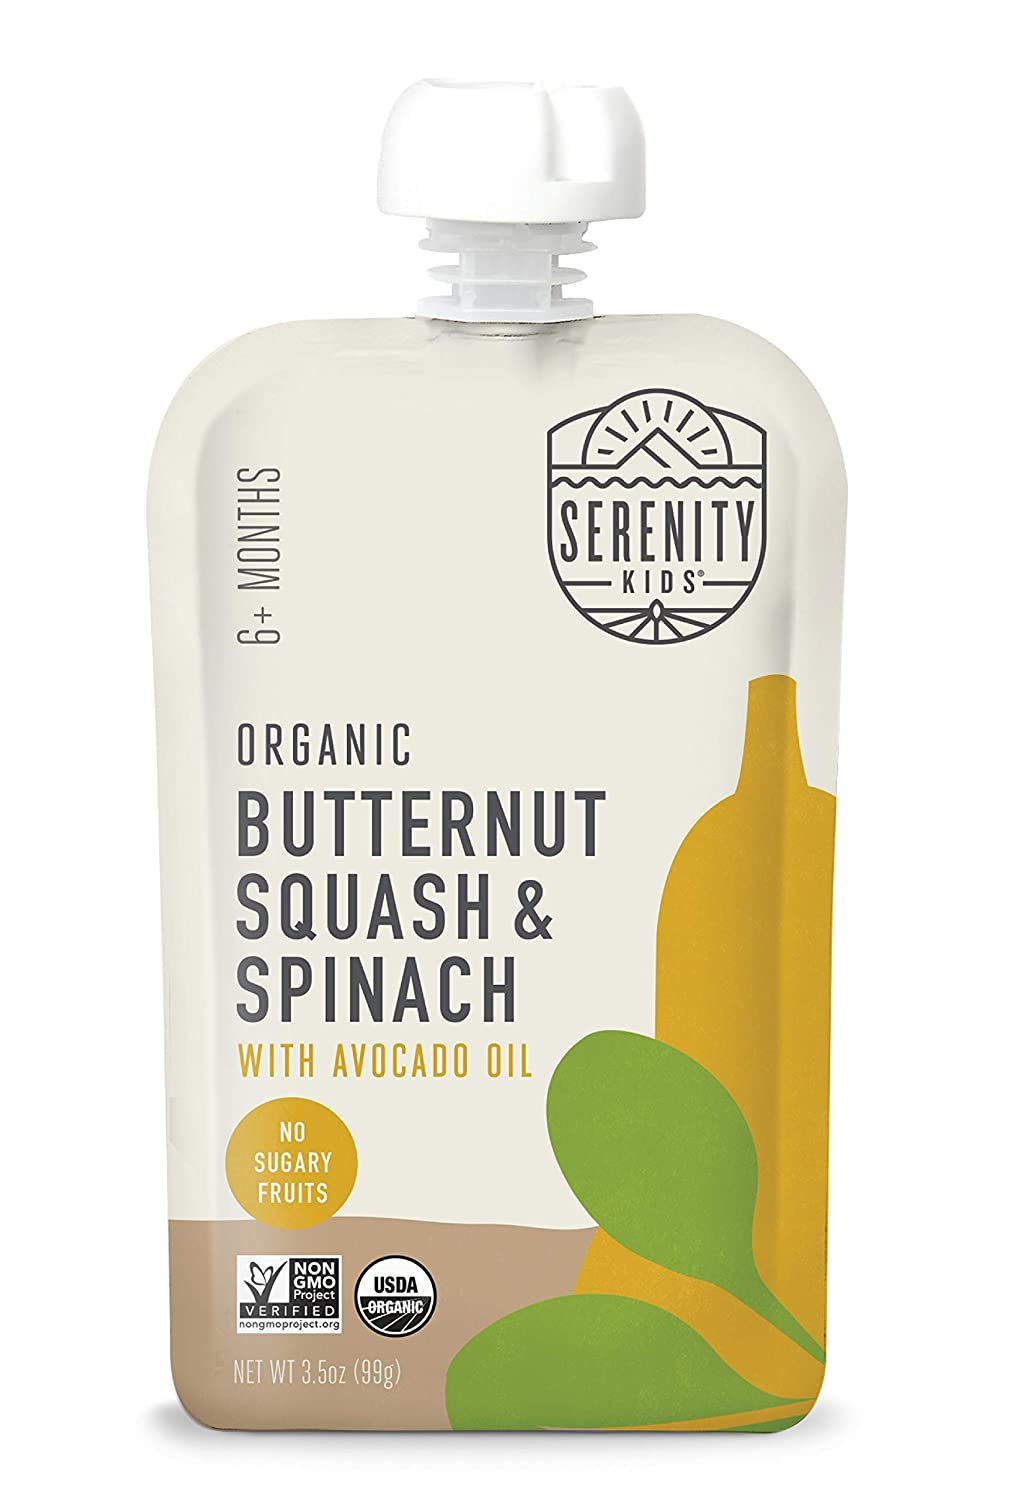 Serenity Kids Baby Food Pouches, Organic Butternut Squash and Spinach with Avocado Oil, For 6+ Months, 3.5 Ounce Pouch (12 Count)